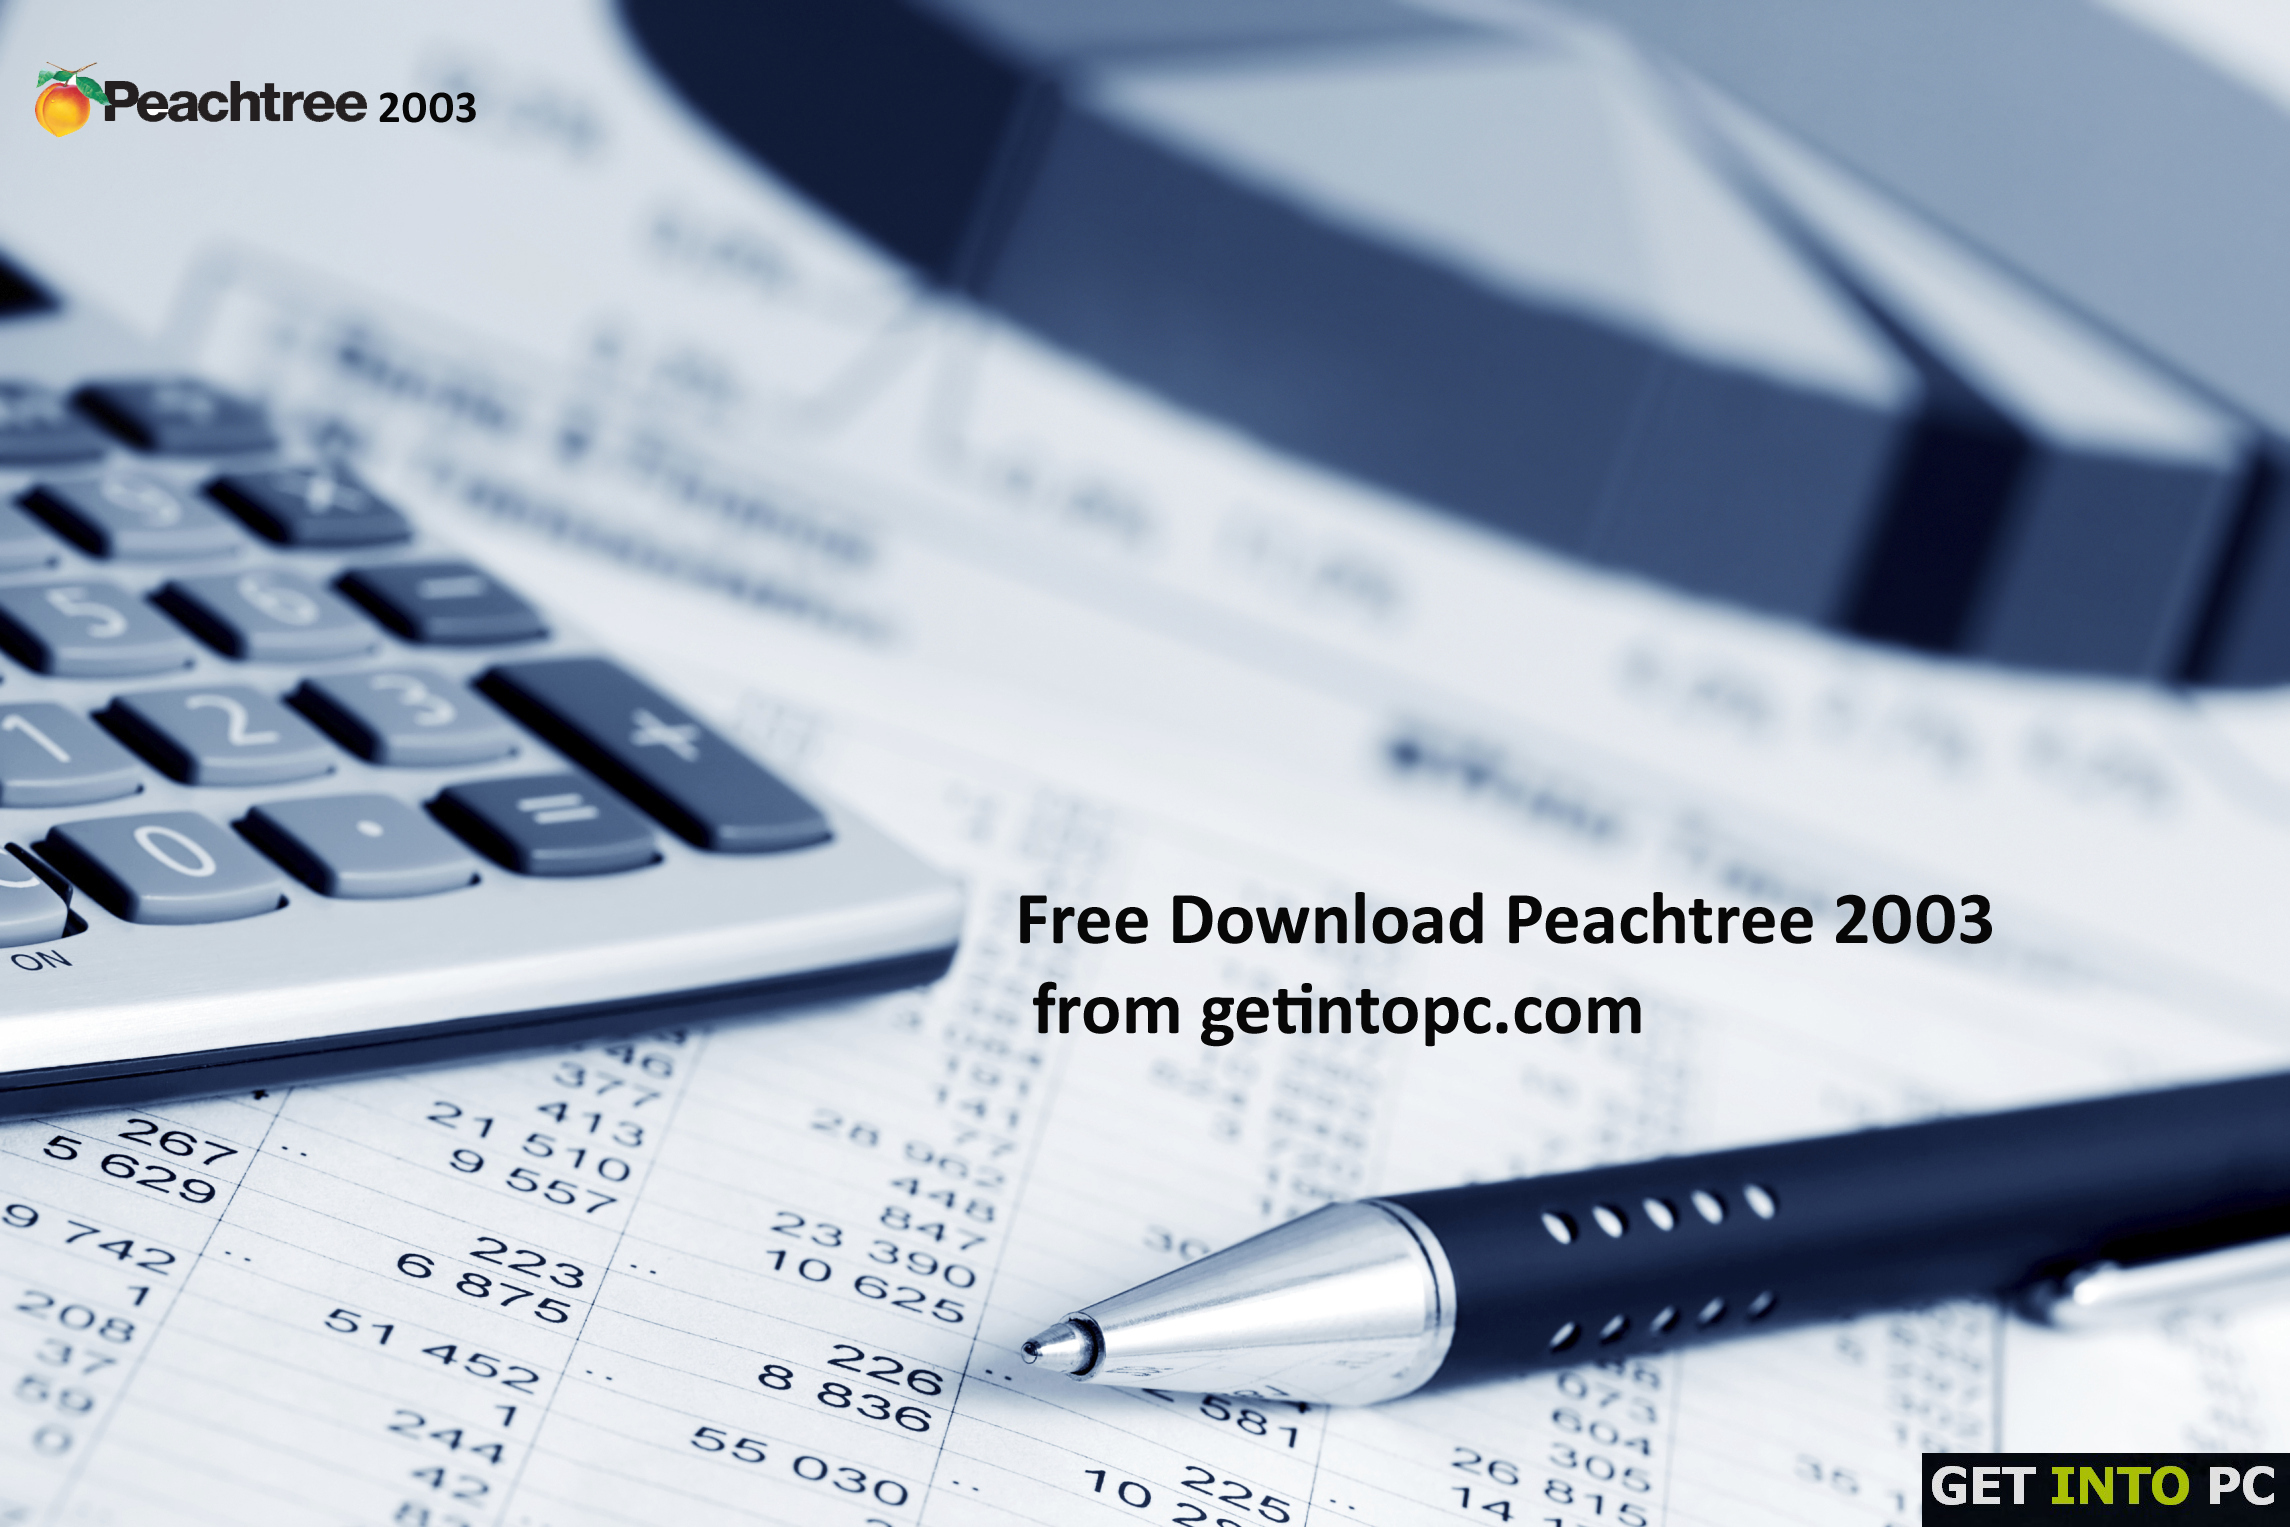 Peachtree 2003 Free Download